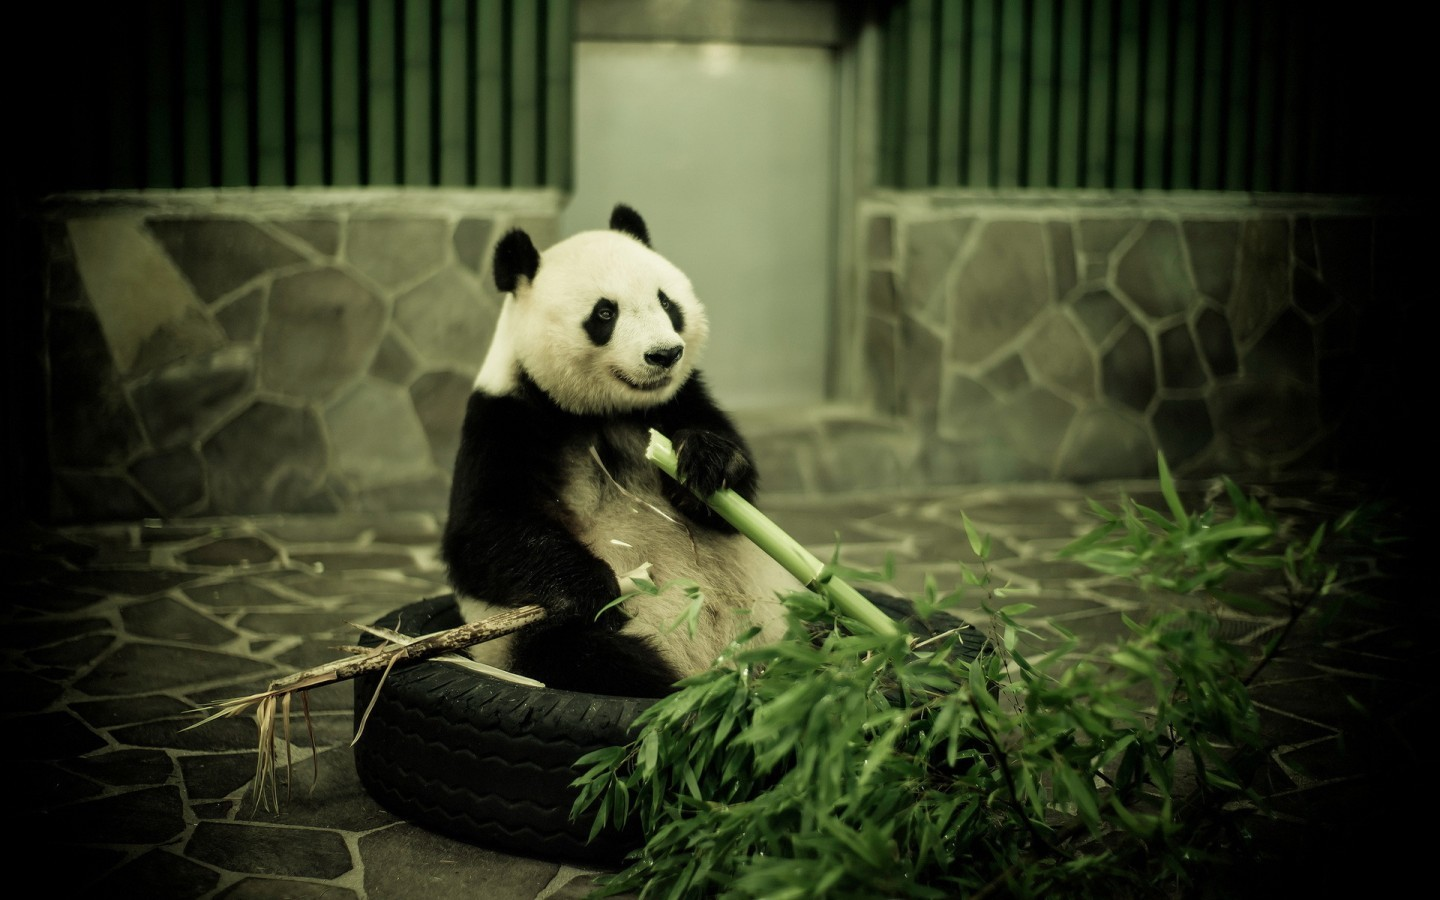 22860 download wallpaper Animals, Pandas screensavers and pictures for free